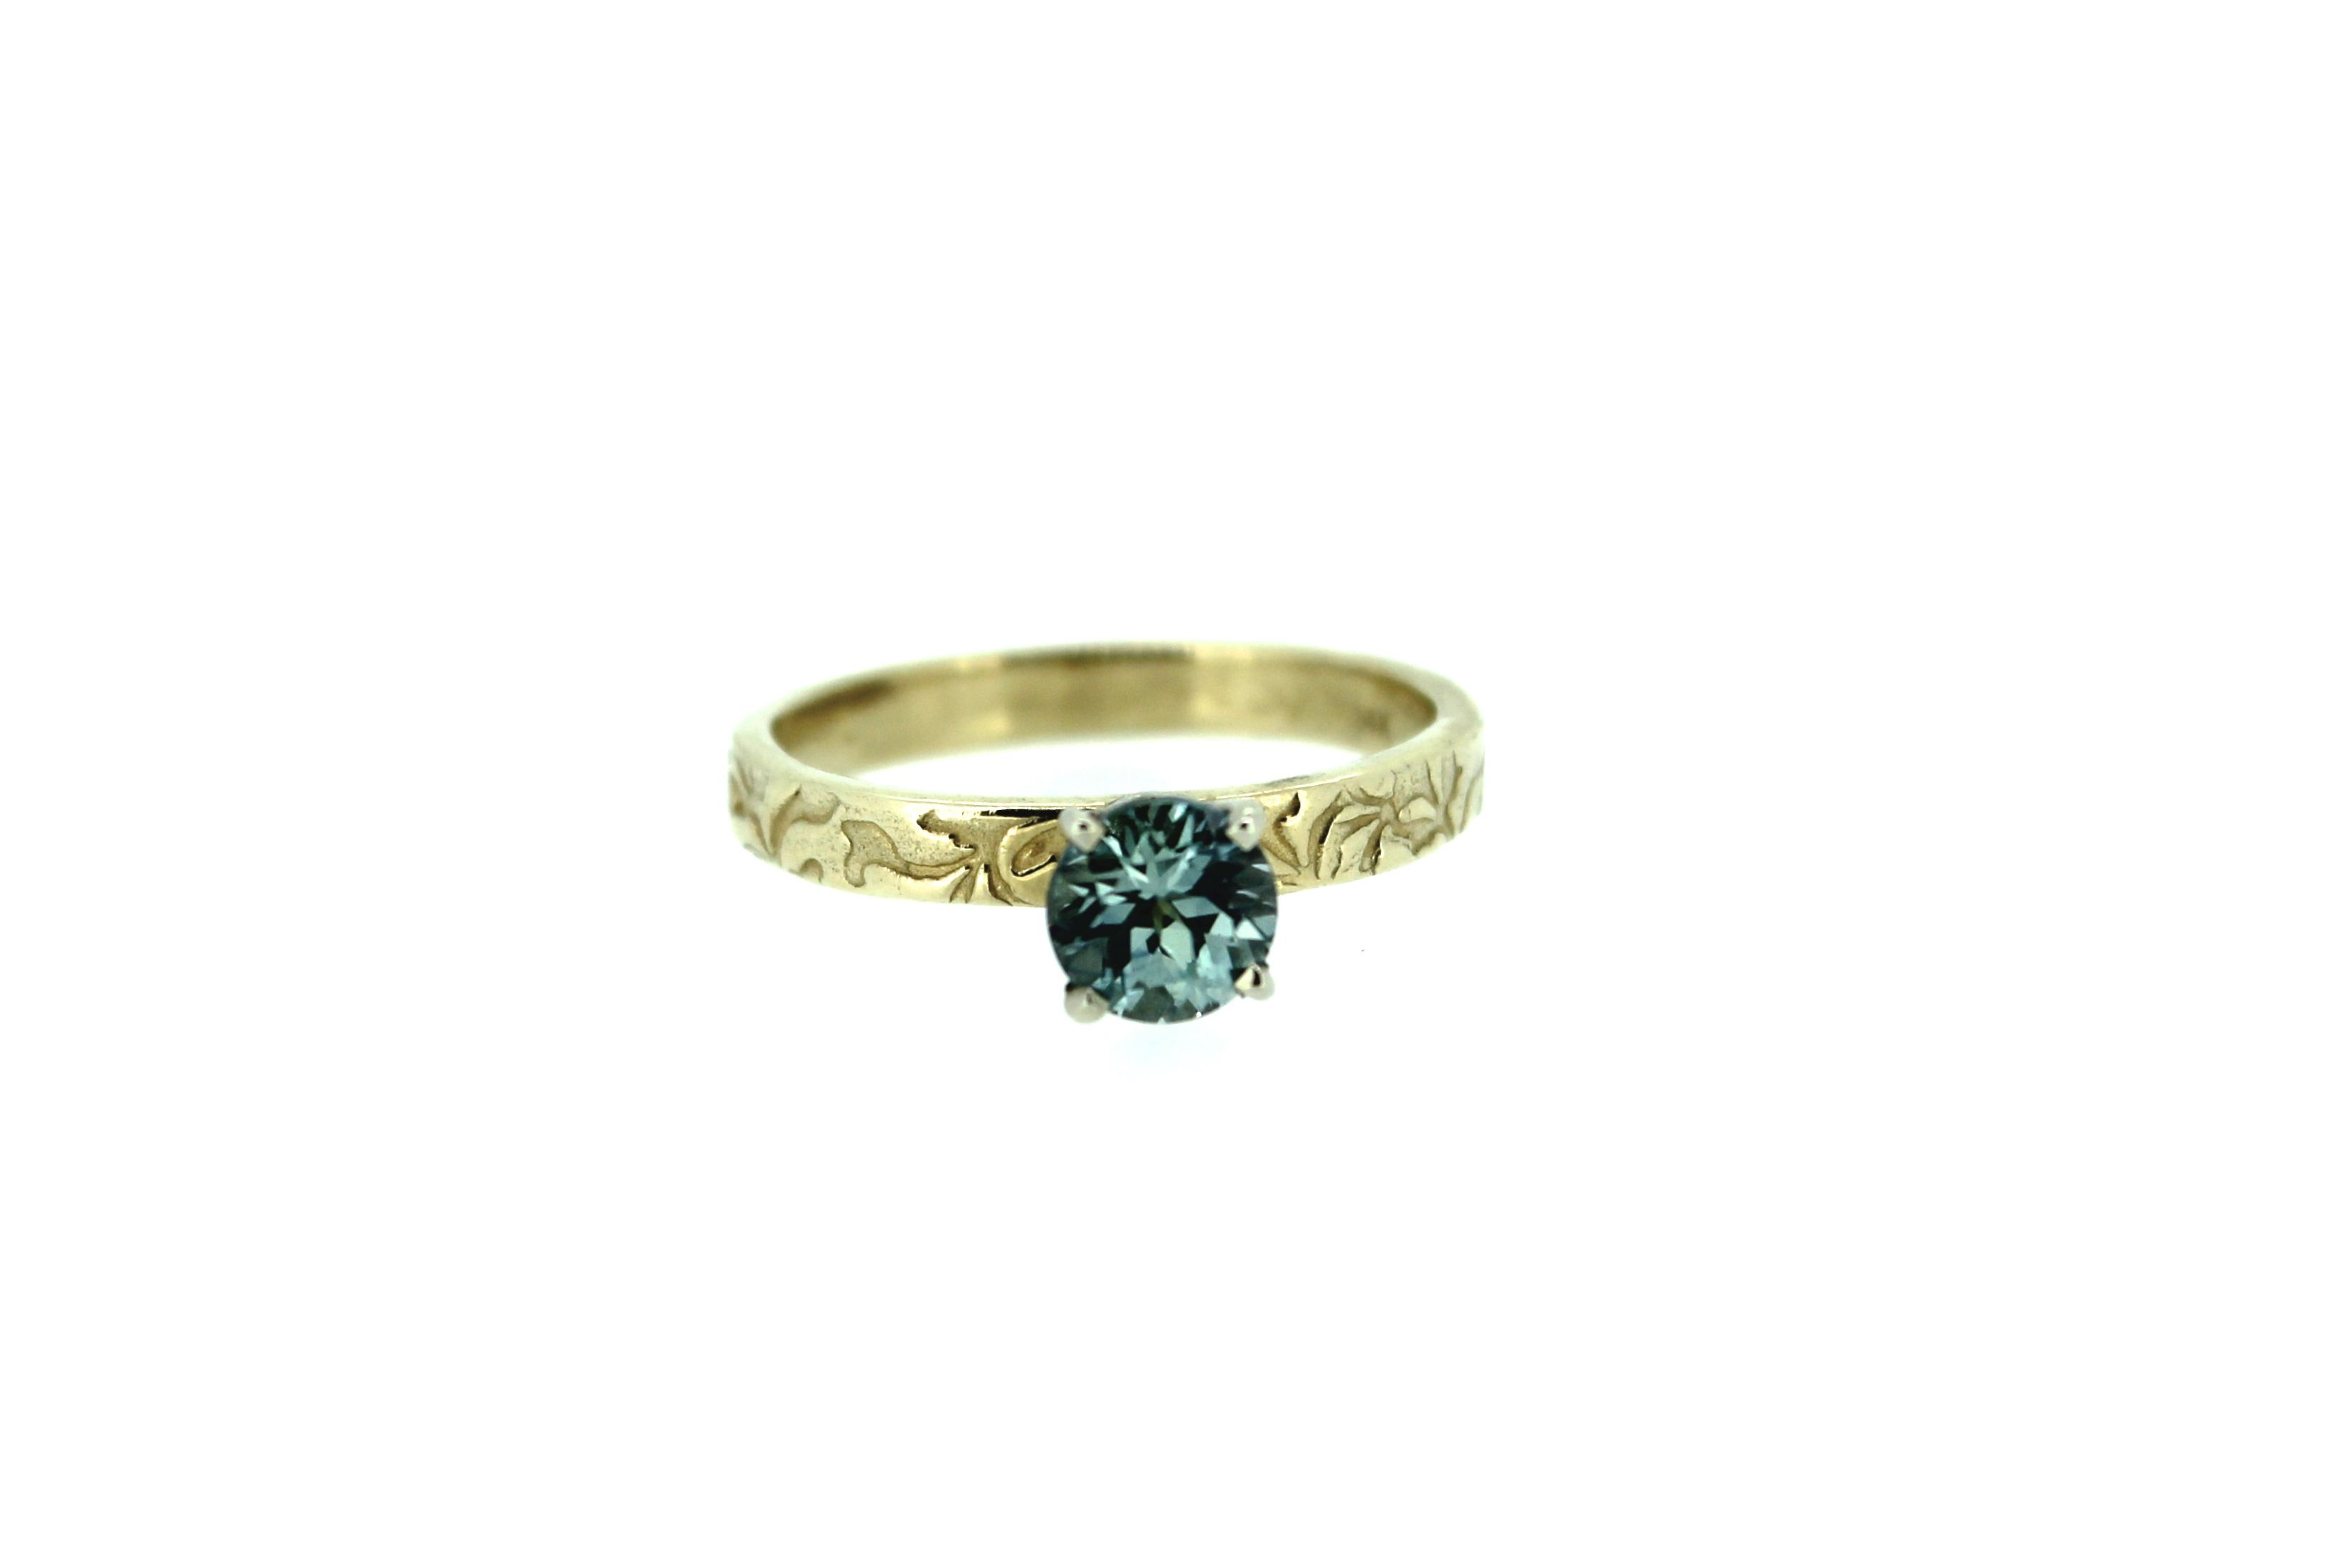 Montana sapphire engagement ring . My signature vines are engraved on the 14k yellow gold band . handcrafted by peaces of indigo